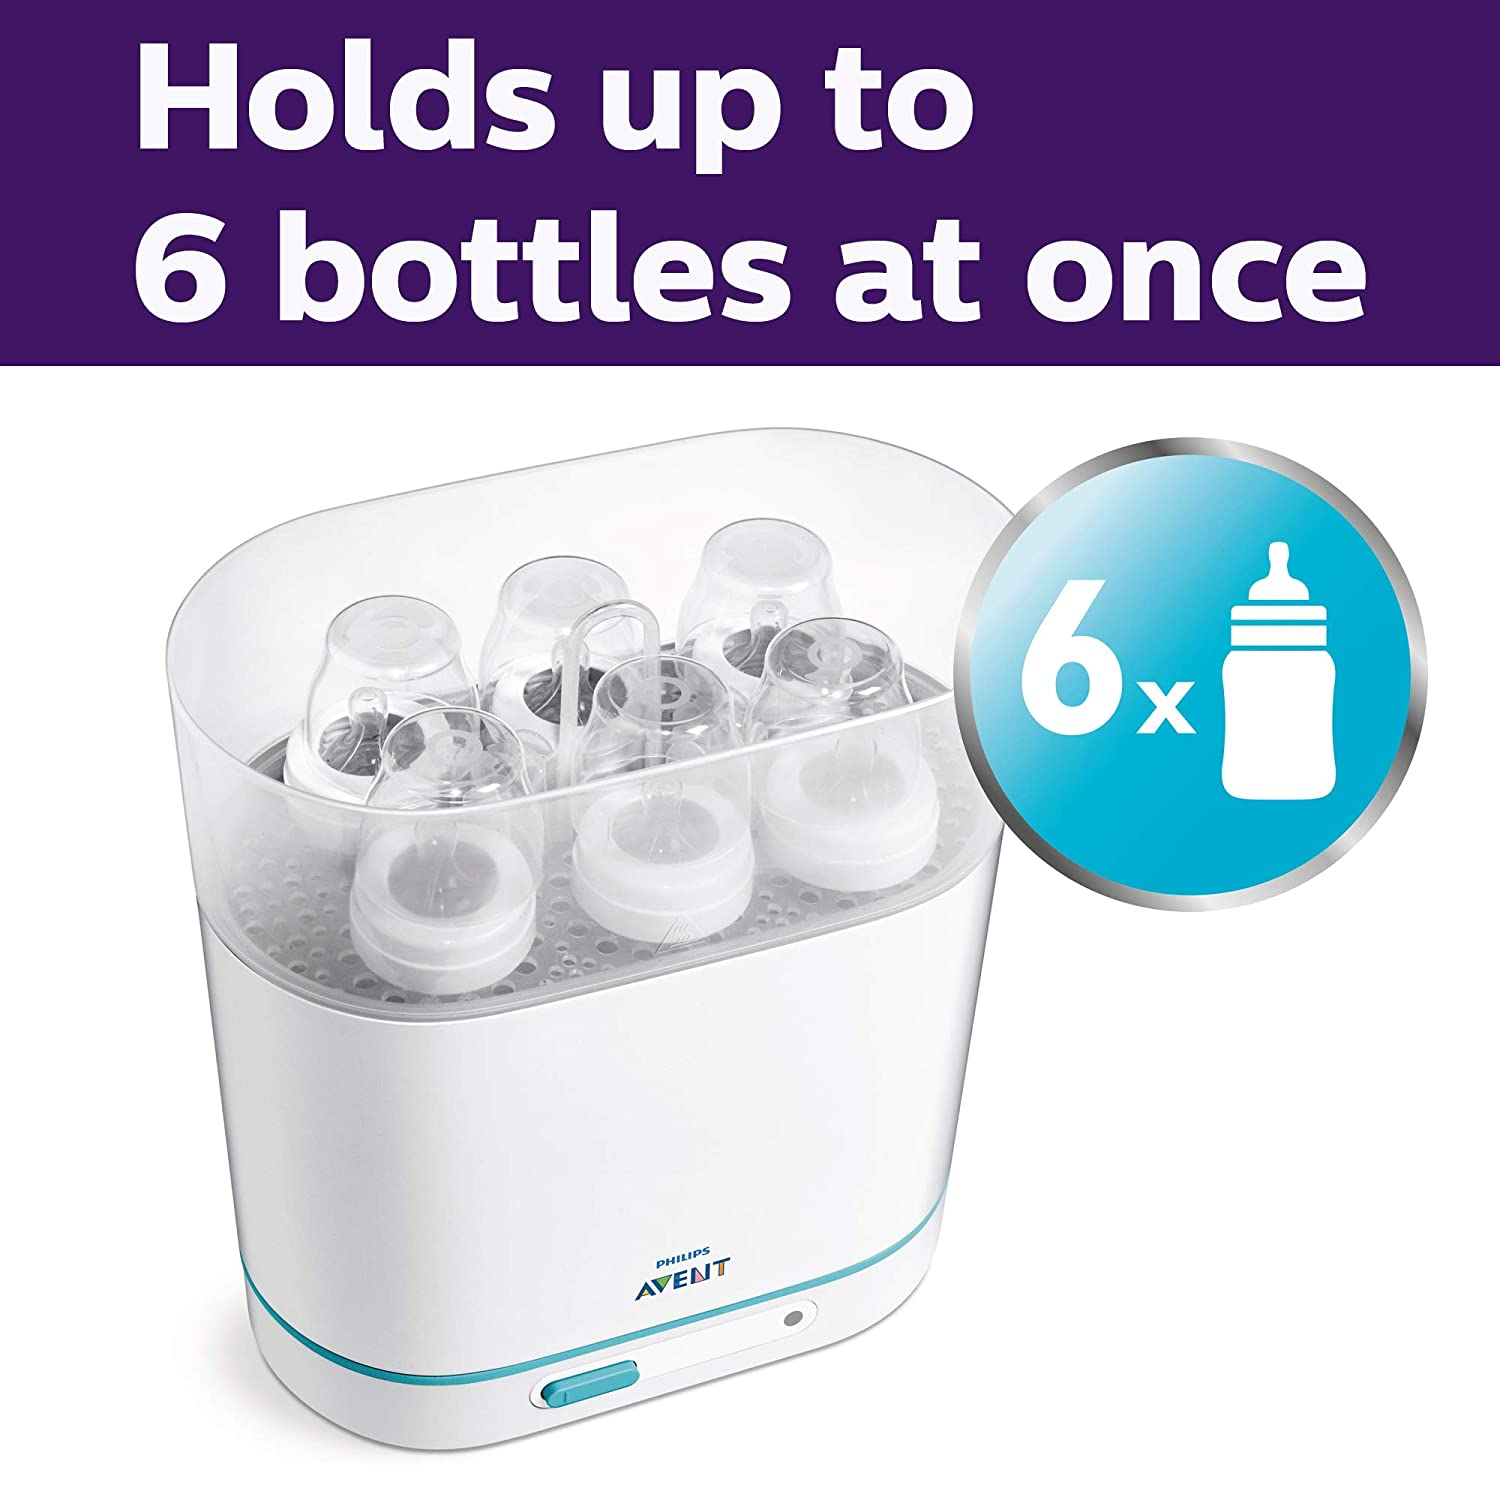 Philips Avent 3-in-1 Electric Steam Sterilizer for Baby Bottles, Pacifiers, Cups and More : Baby Bottle Sterilizers : Baby